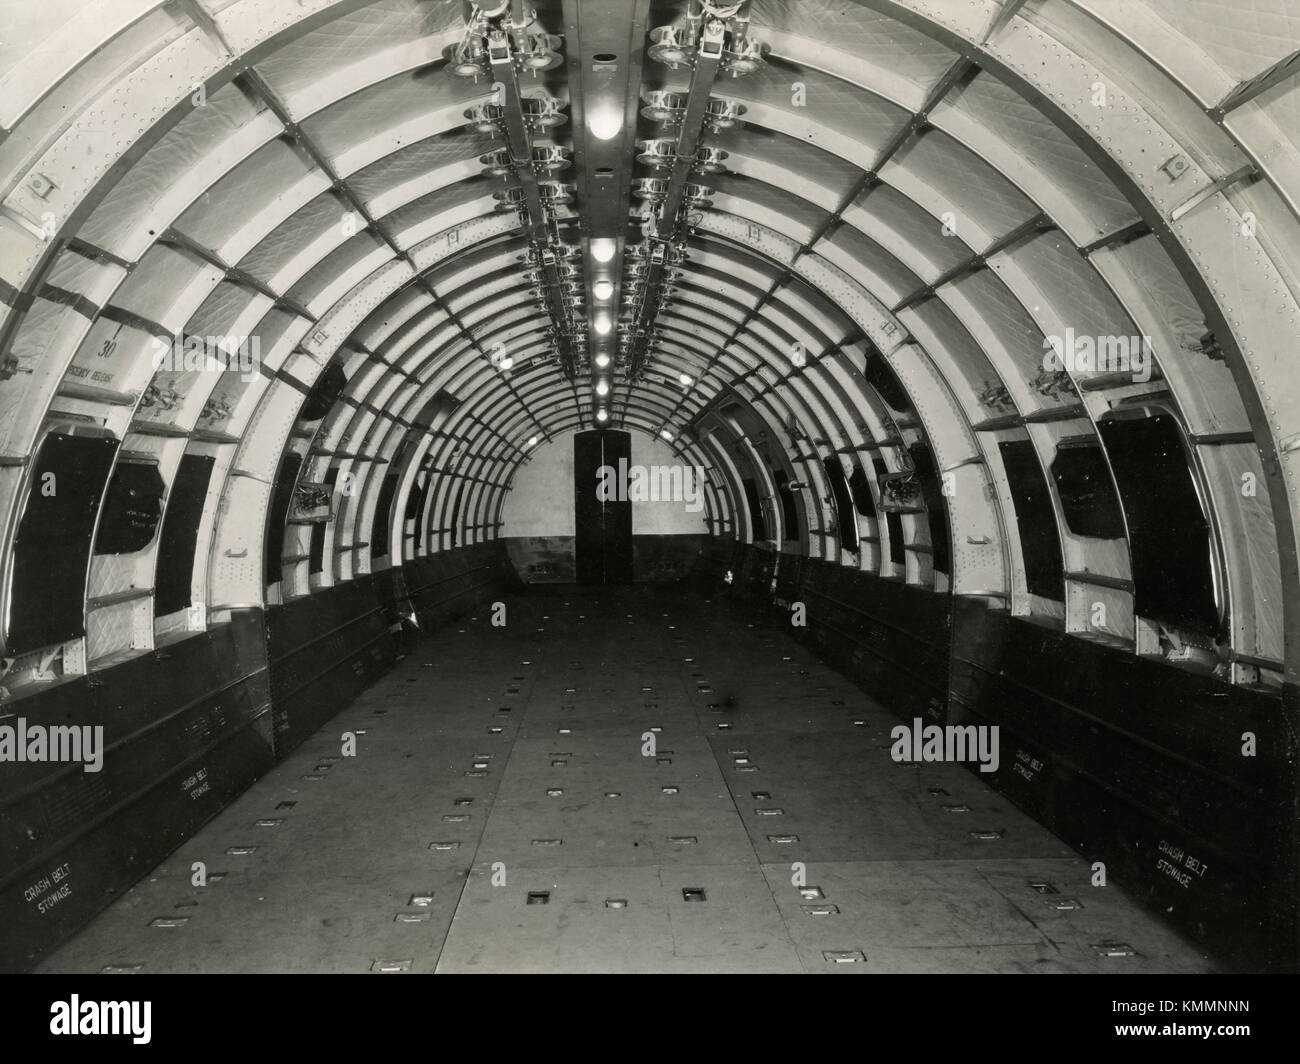 Inside the military transport aircraft Hastings, UK 1940s - Stock Image